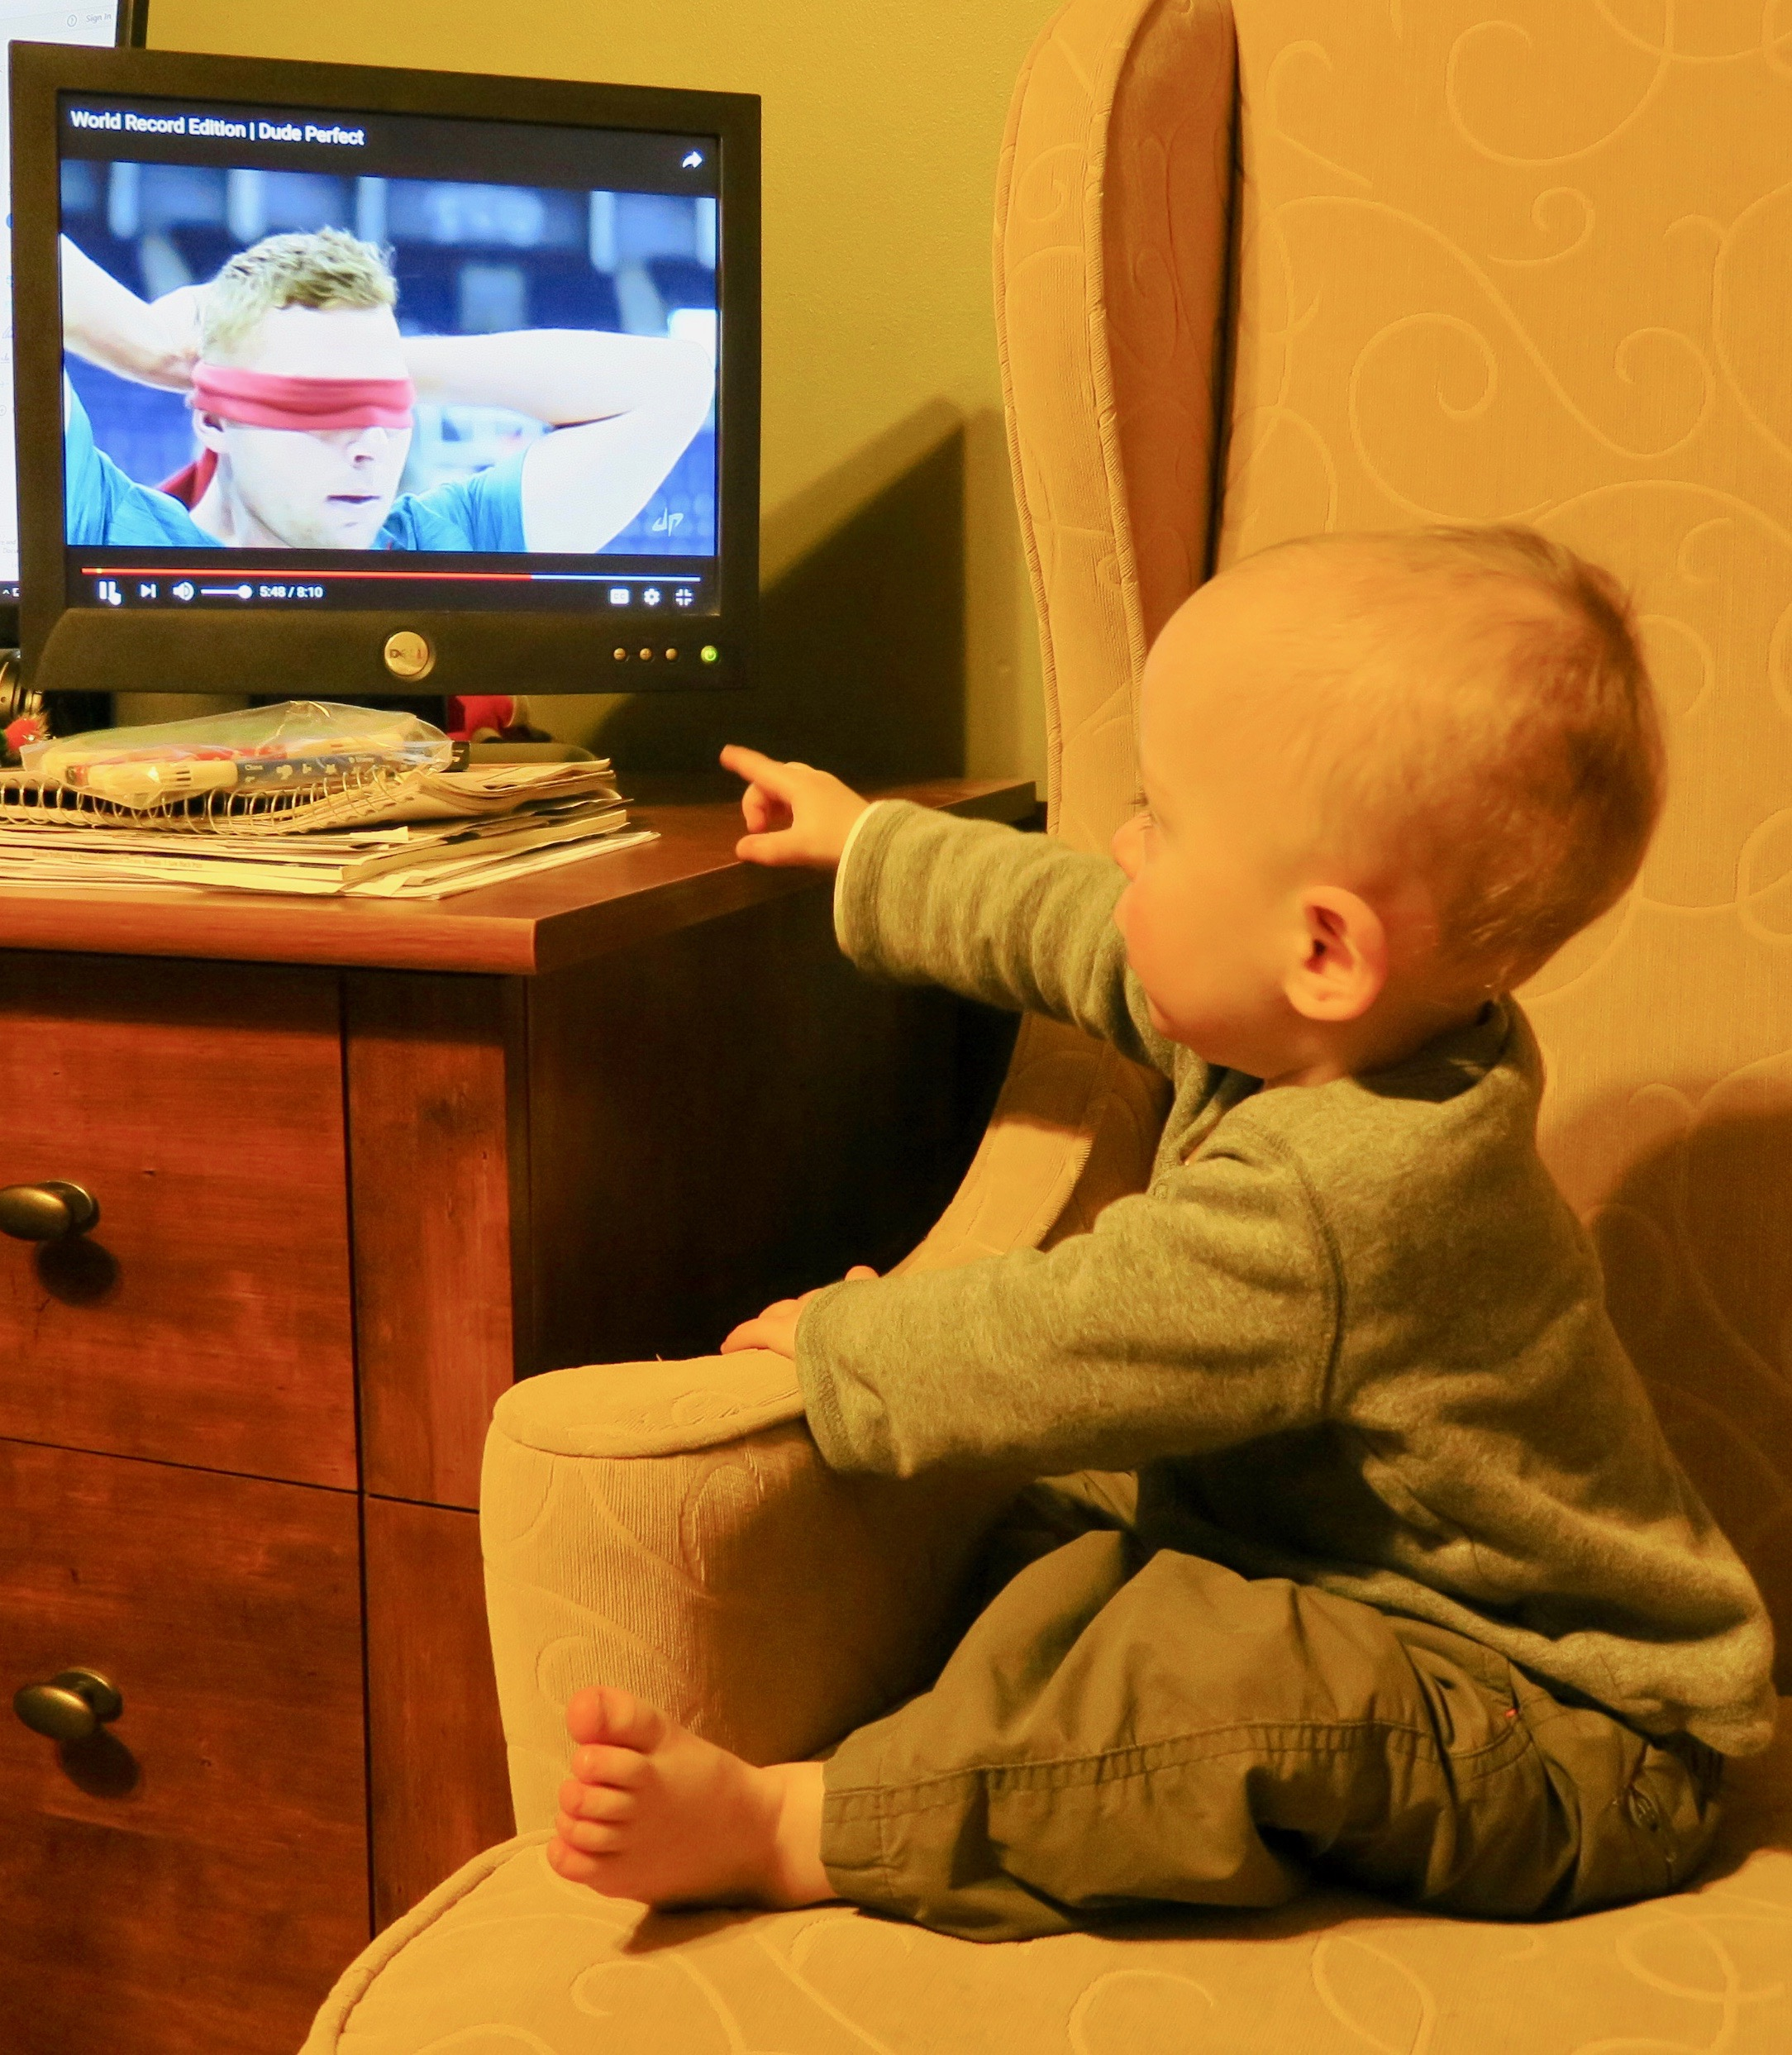 baby-watching-youtube-dude-perfect